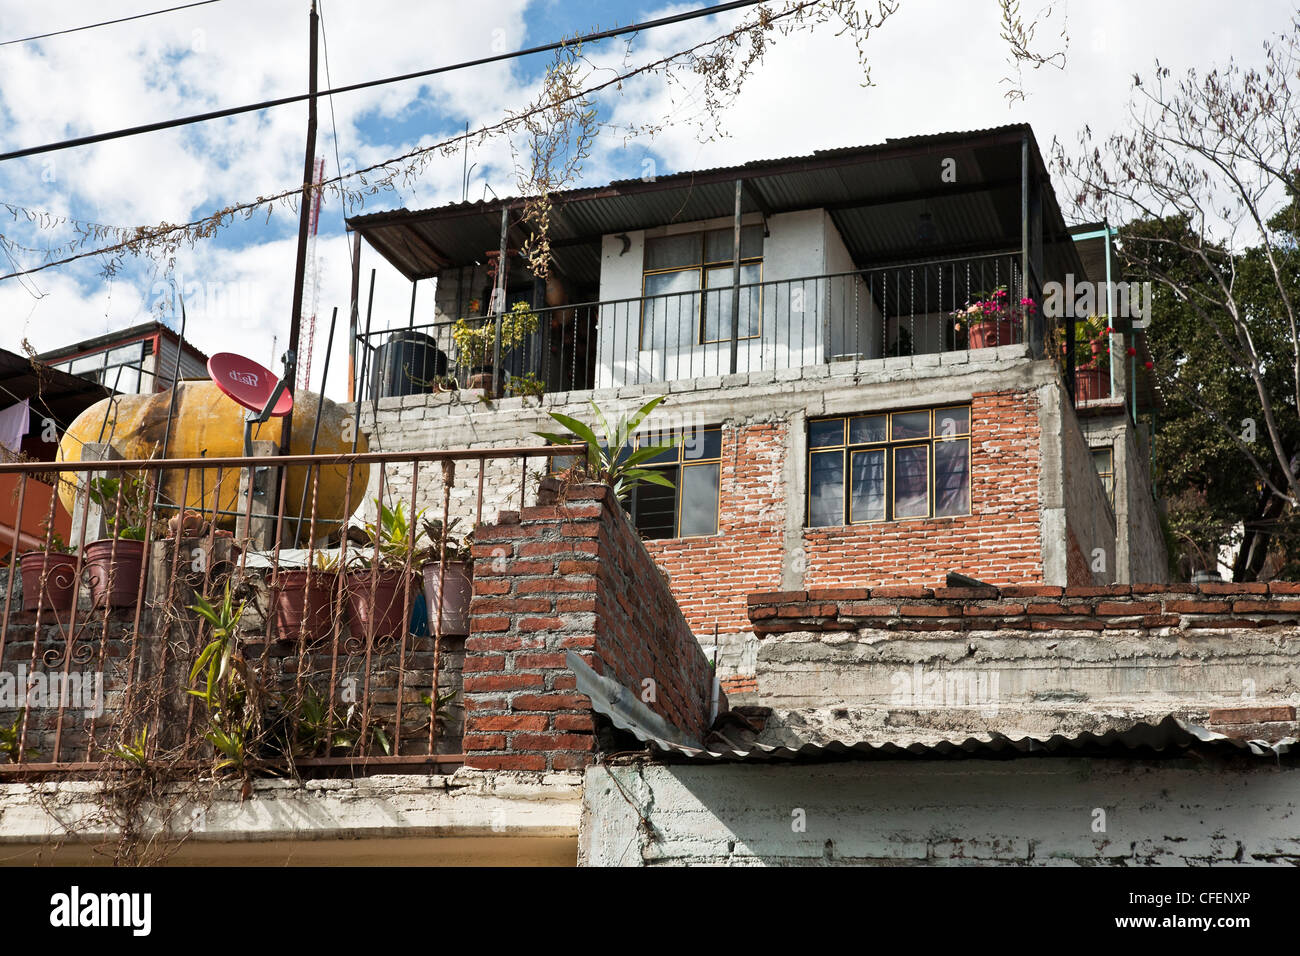 substantial middle class Mexican hillside duplex on Cerro del Fortin overlooking Oaxaca de Juarez on beautiful spring - Stock Image